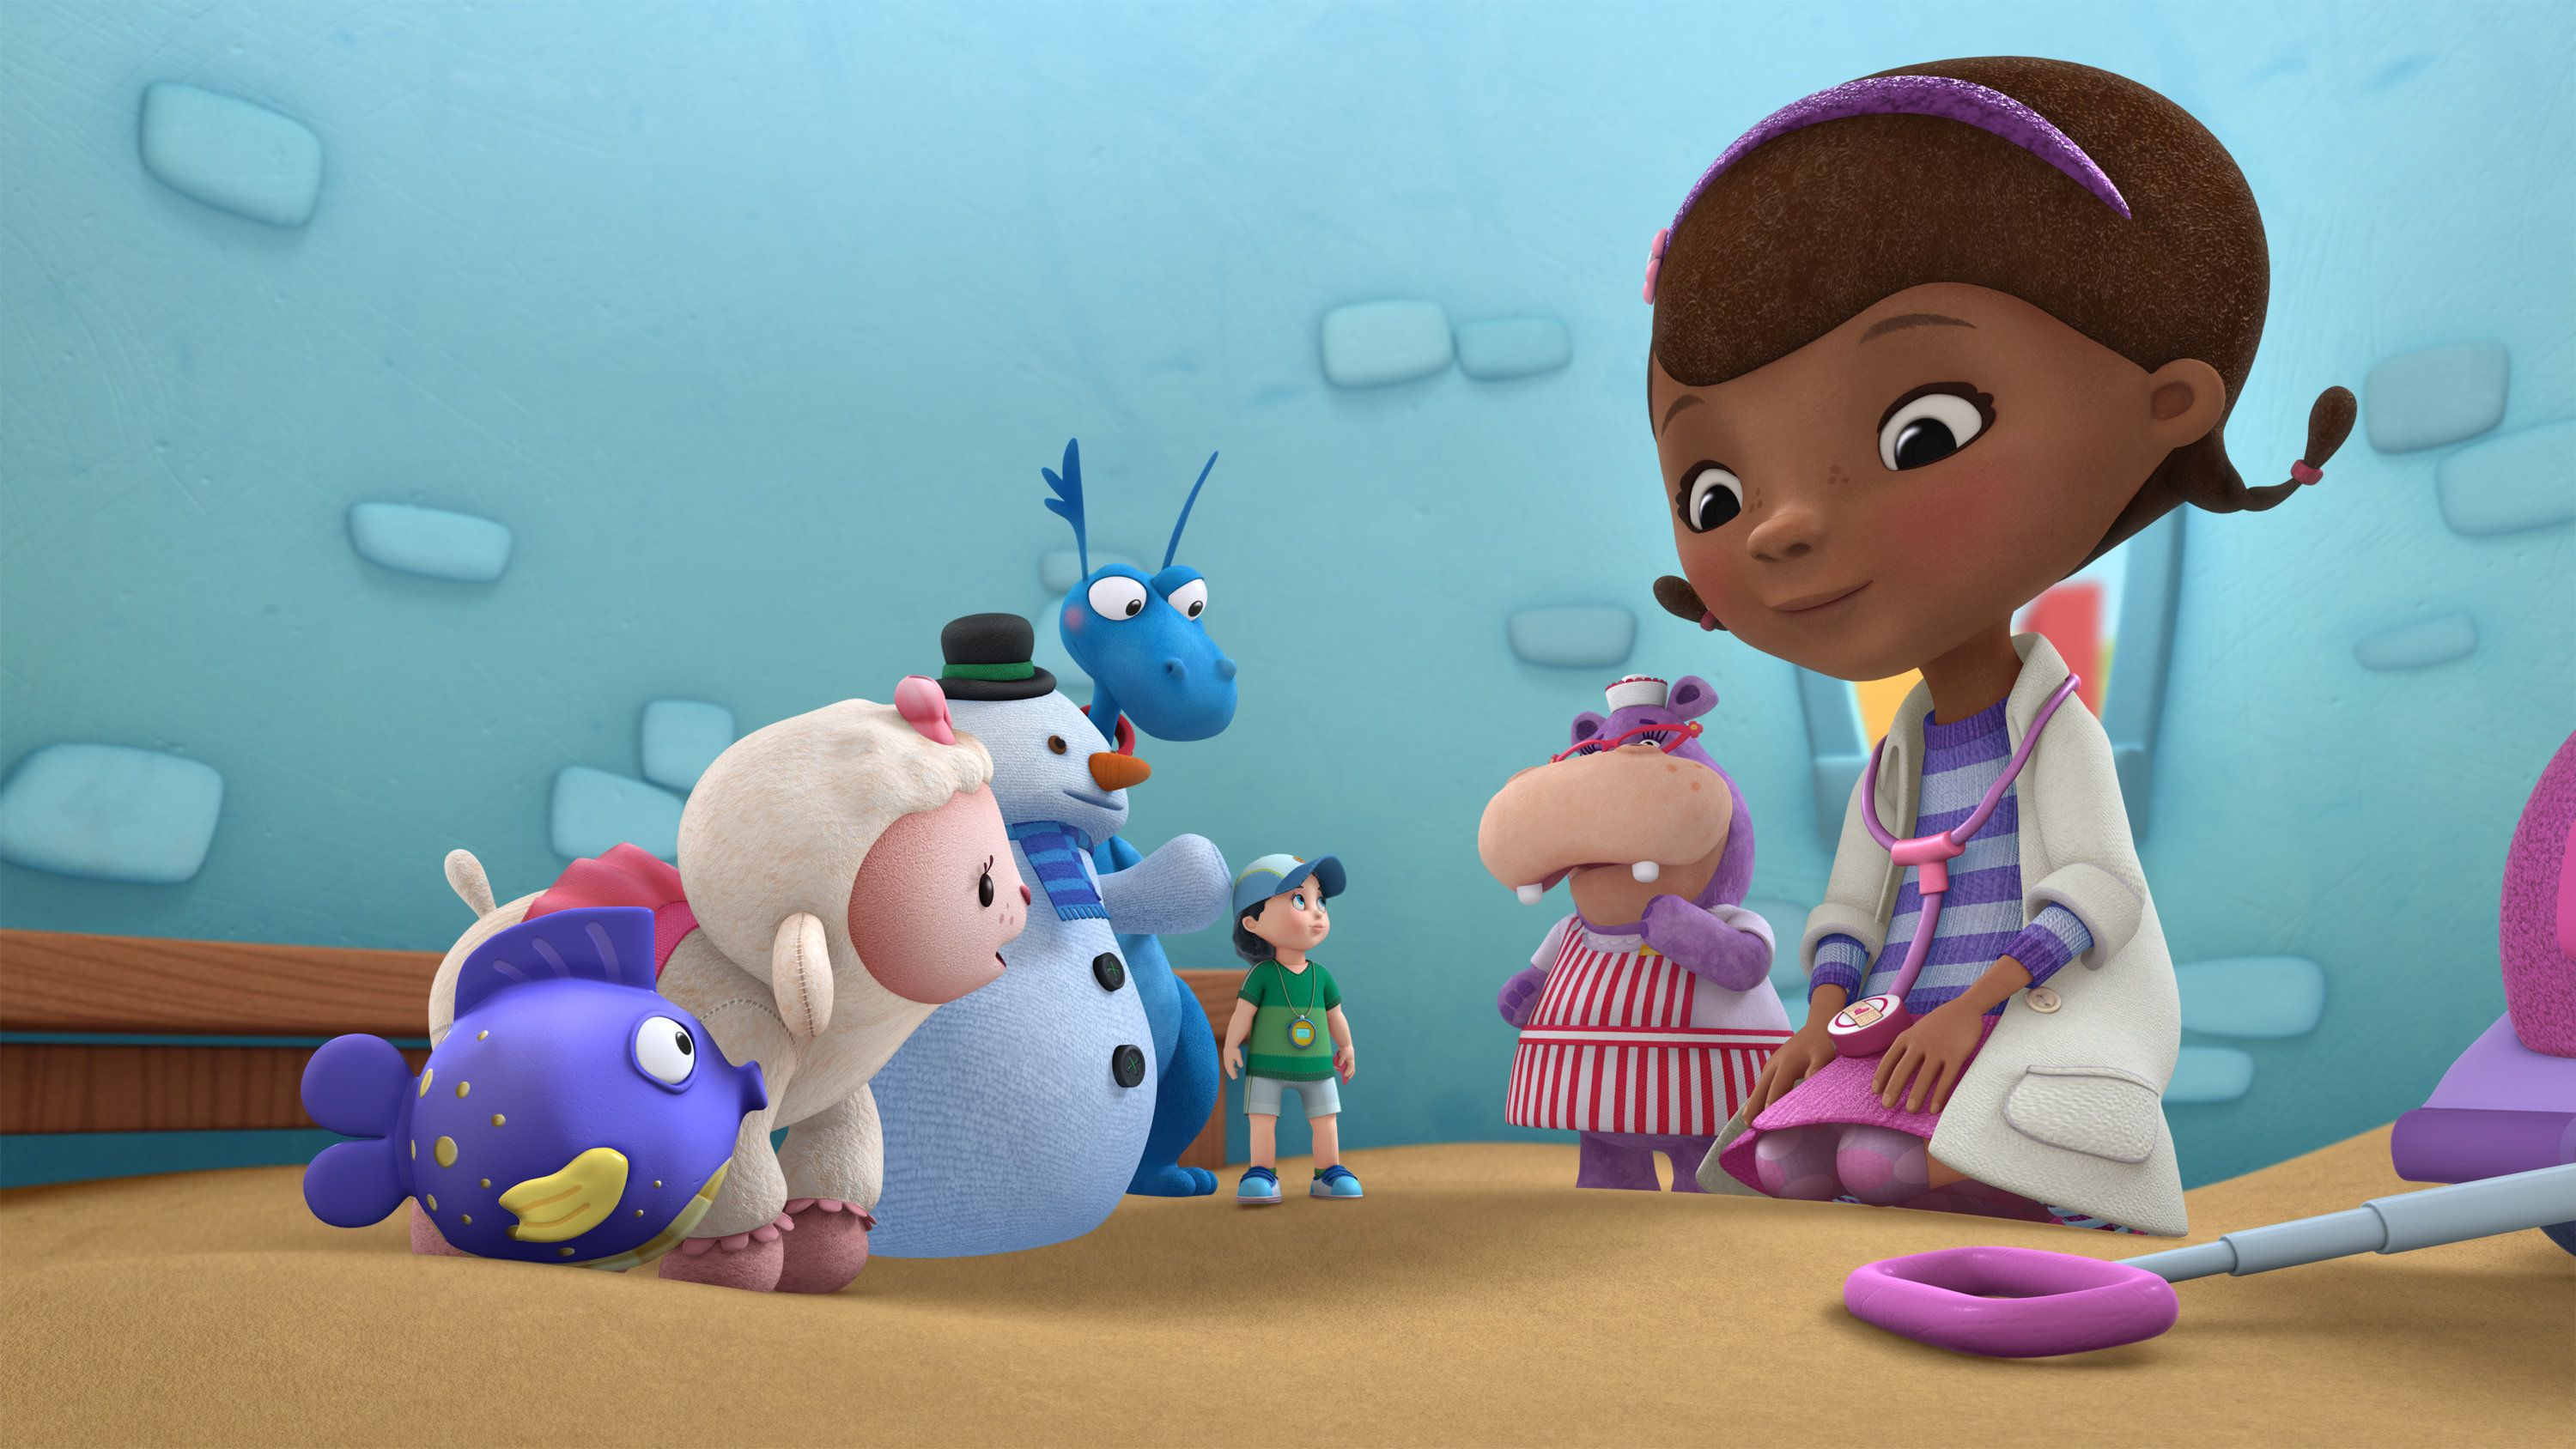 DOC MCSTUFFINS - 'Getting to the Heart of Things' - After Doc discovers that Coach Kay, a small plastic doll in a track suit, has a crack in her whistle valve, she takes her to the clinic to perform 'surgery' to replace the valve. This new episode of 'Doc McStuffins' premieres Friday, March 13 (10:20 AM - 10:50 AM ET/PT) on Disney Junior. (Image by Disney Junior via Getty Images)